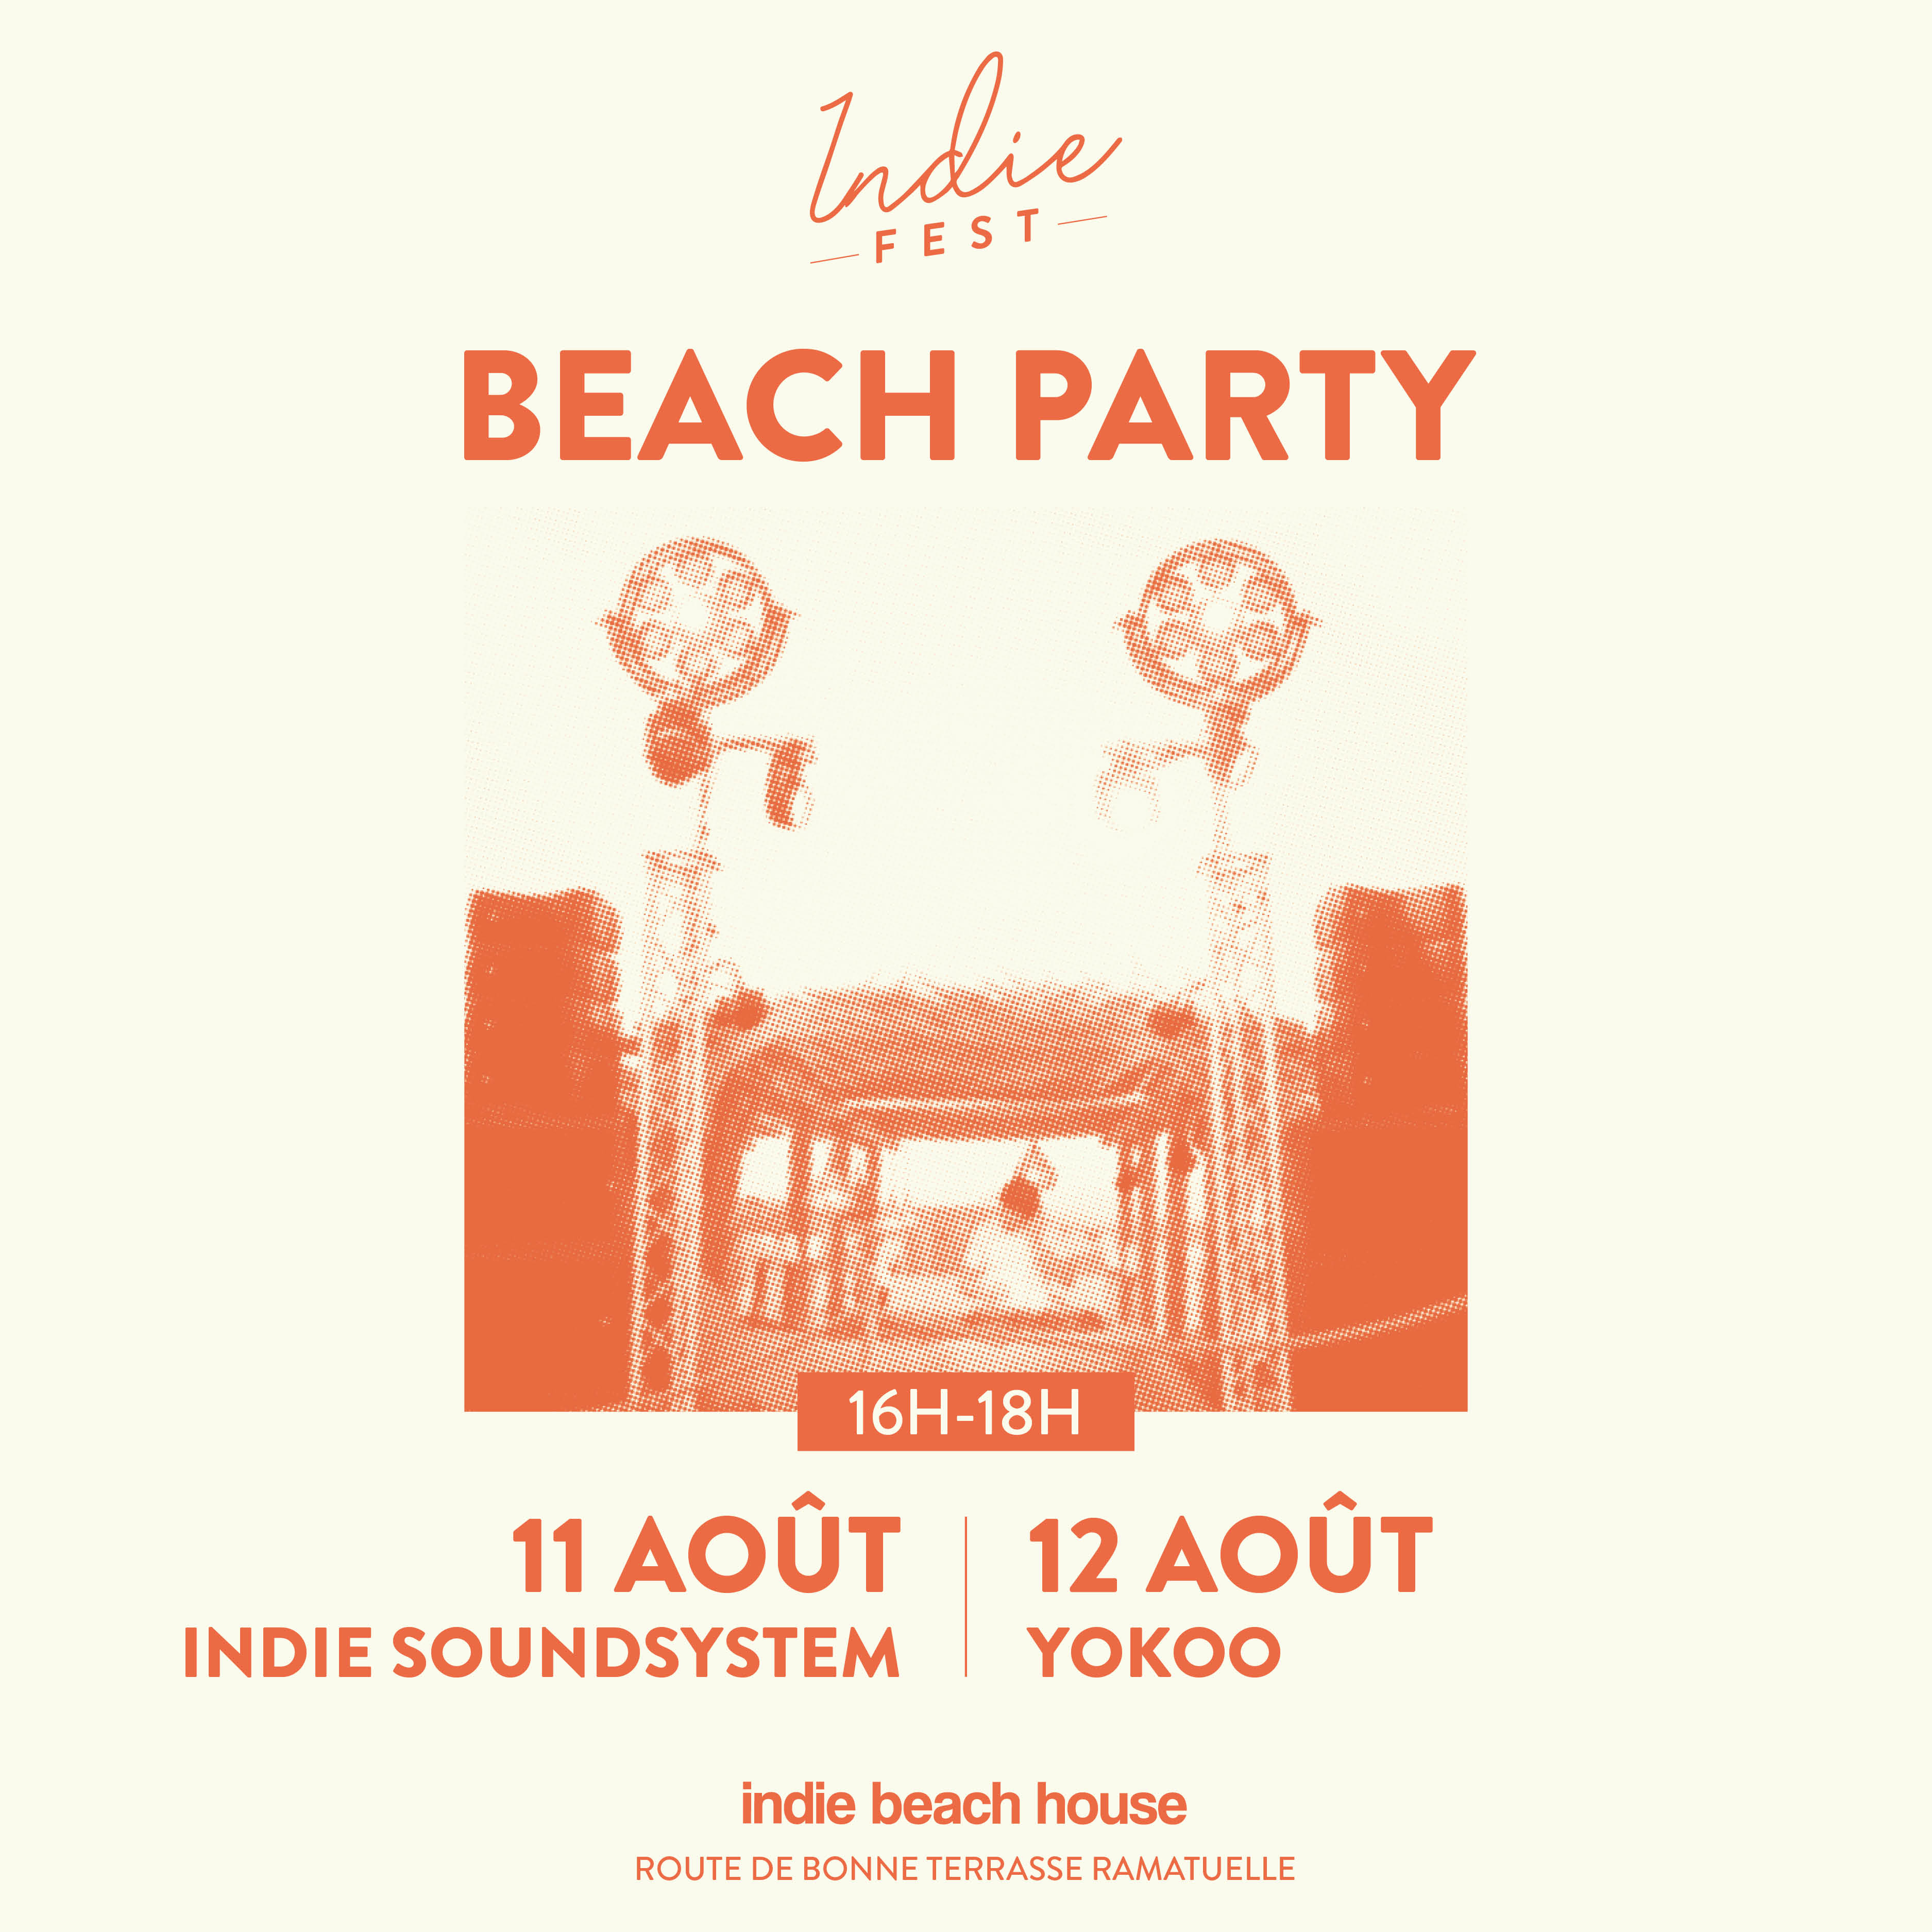 BEACHPARTY 12/13 AUGUST